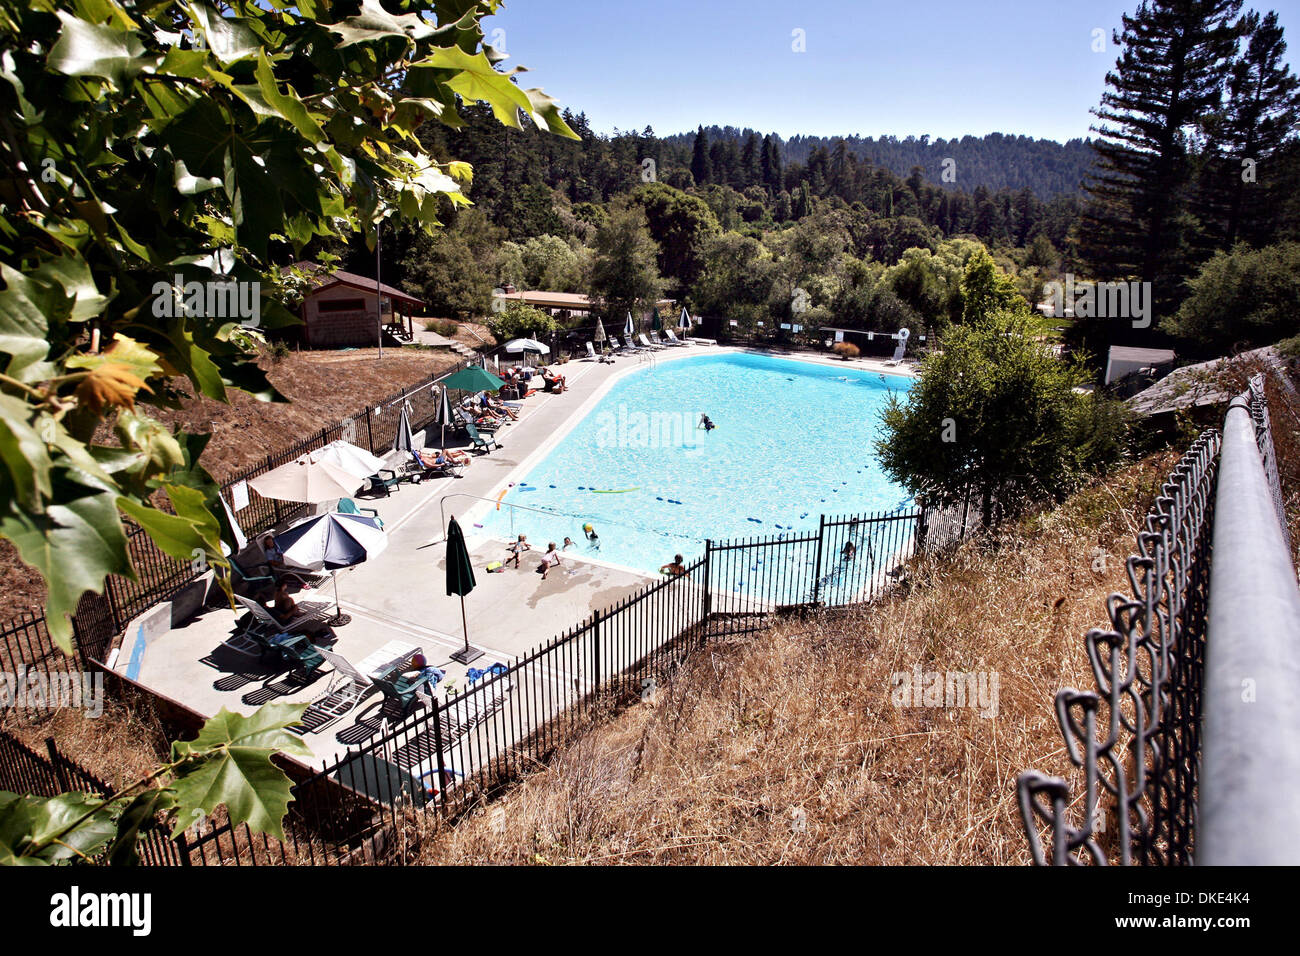 Residents enjoy the warm weather at the community pool in La Honda